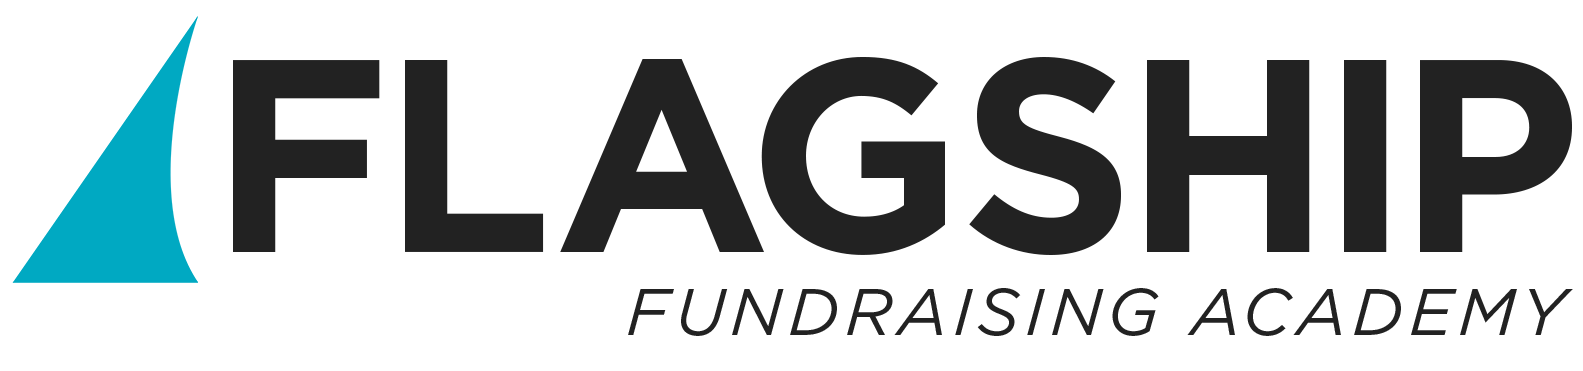 Flagship Fundraising Academy